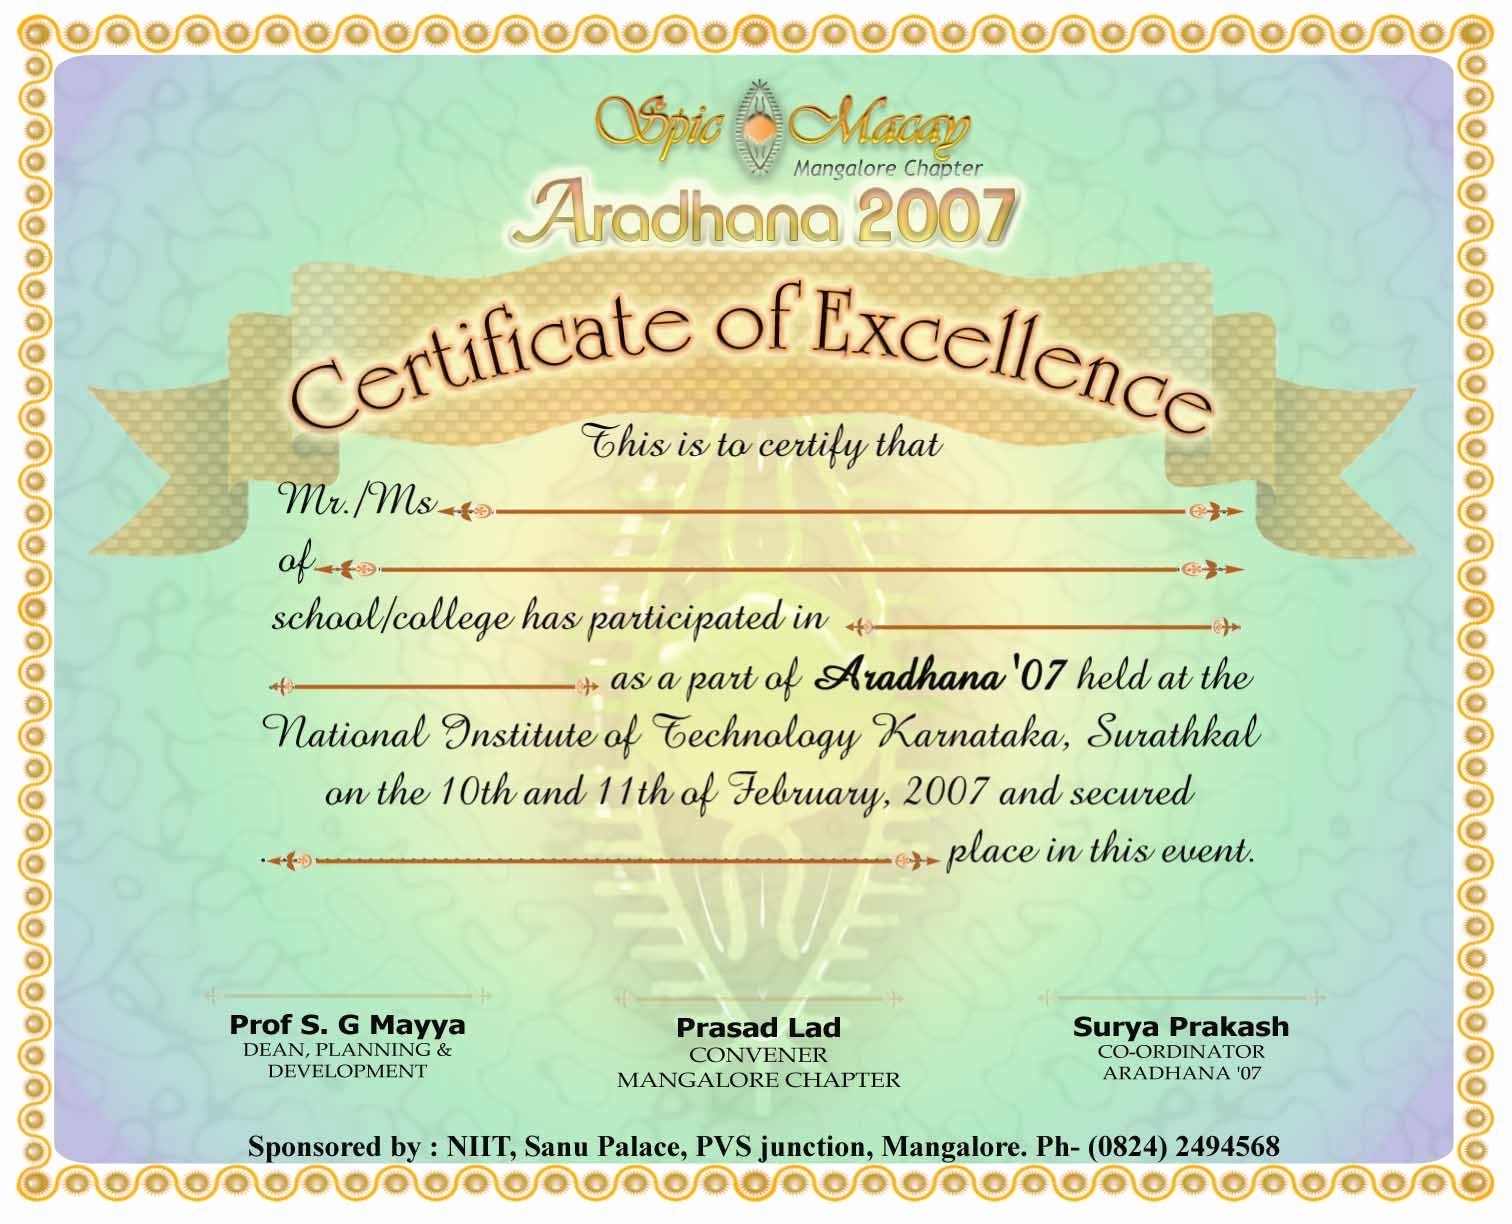 Certificate Of Participation Design Elegant Certificate Participation Design